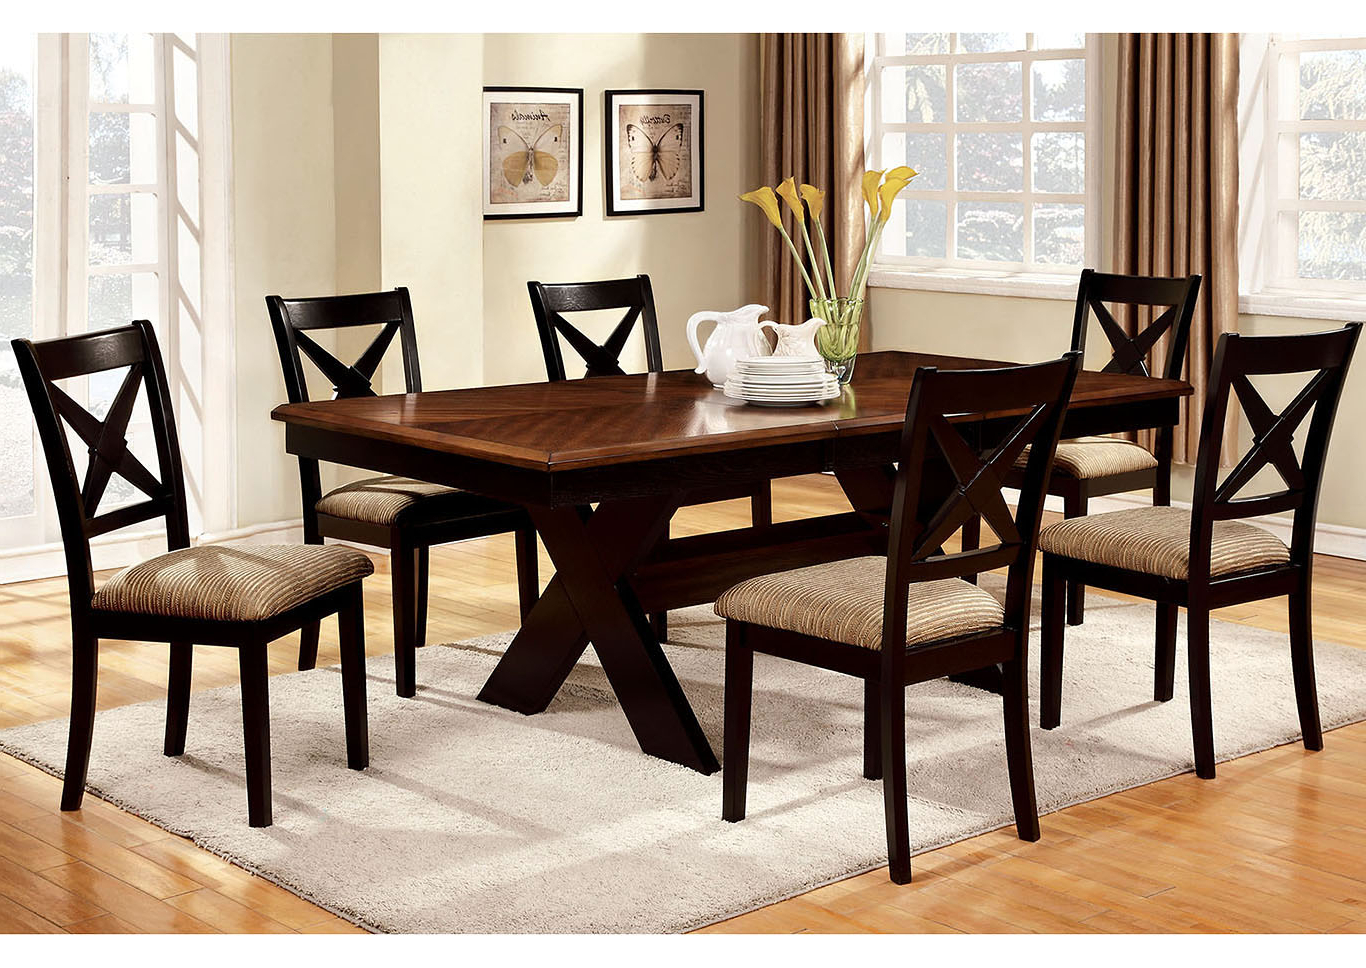 Most Popular Transitional 6 Seating Casual Dining Tables Within Foothills Family Furniture Liberta Extension Leaf Dining (Gallery 19 of 30)